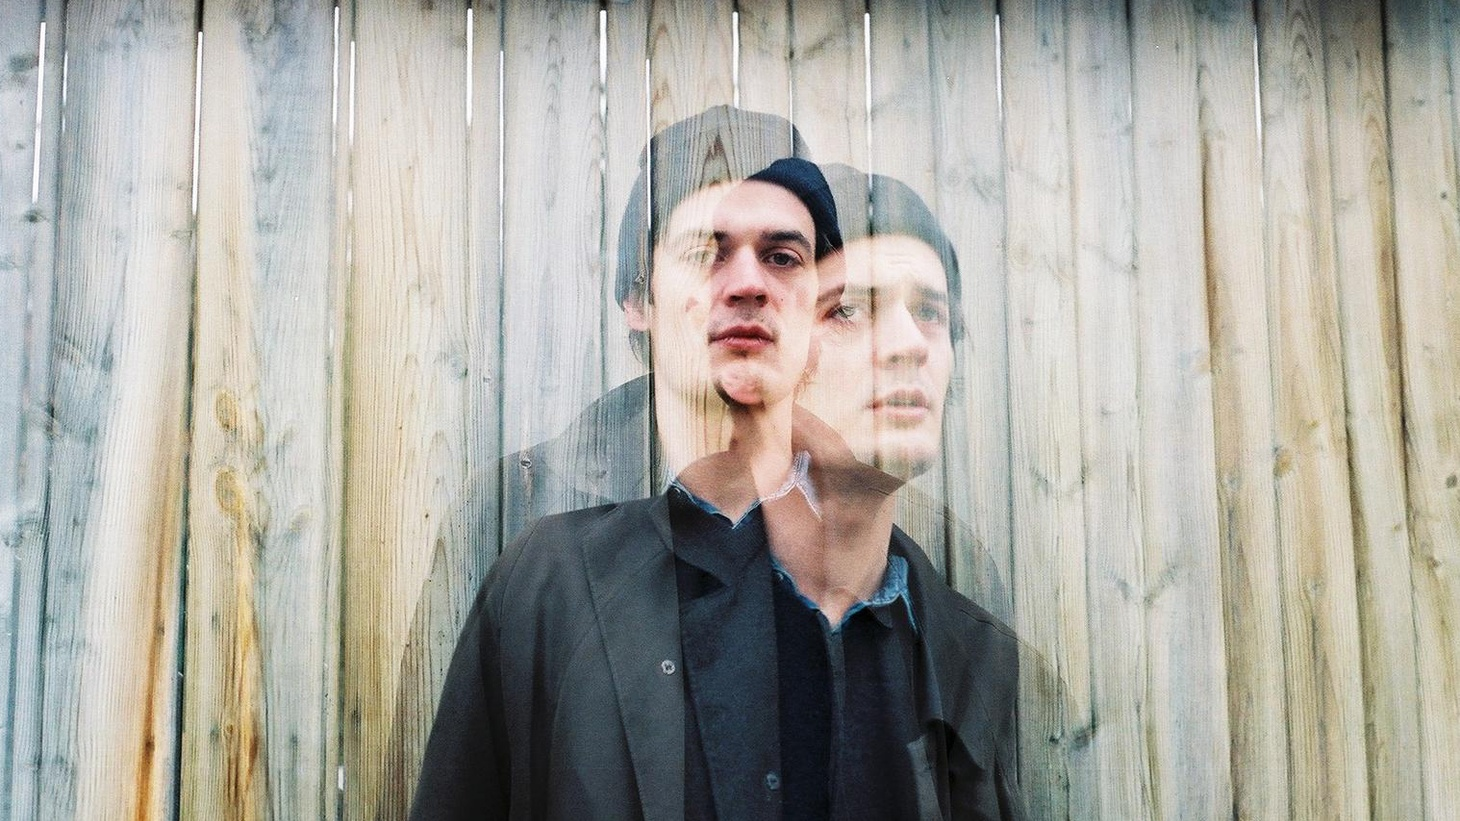 Edmontonian Calvin Love brings his idiosyncratic rock jams to your turntables (or whatever your musical input of choice is) with his new album (and his first for the premiere Canadian label, Arts & Crafts), Super Future.